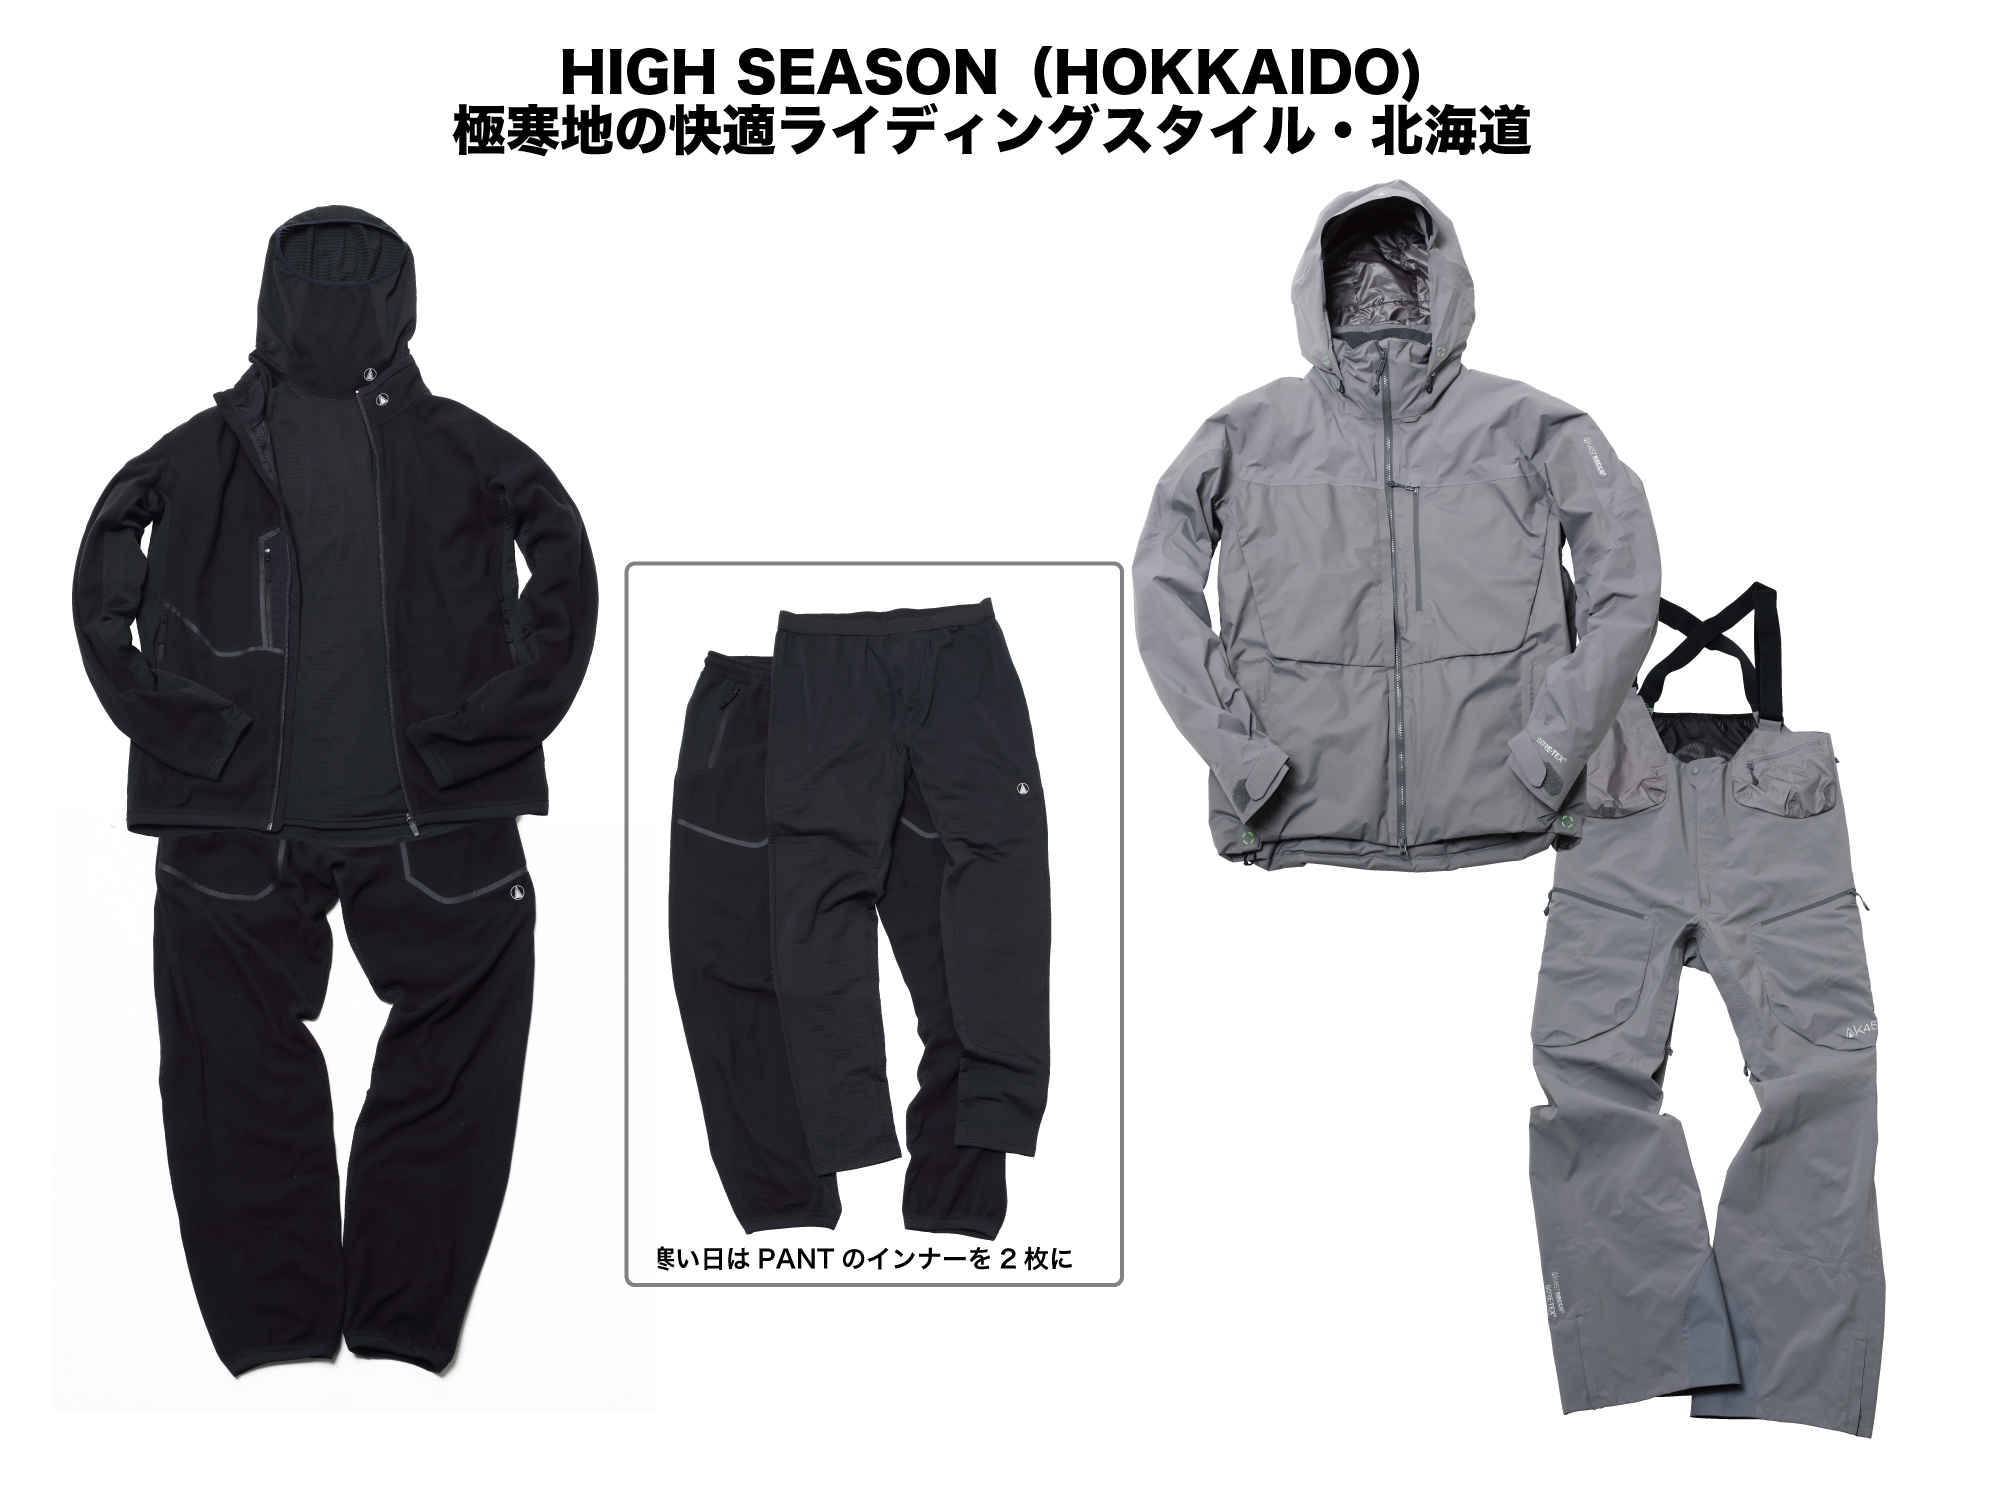 (上)(INNER)BASE LAYER HI NECK FLEECE:¥18,000+MICRO FLEECE JACKET:¥34,000 (OUTER)LIGHT DOWN JACKET:¥98,000 (下)(INNER)MICRO FLEECE PANT:¥34,000 ++BASE LAYER PANT FLEECE:¥16,000 (OUTER)HI-TOP PANT:¥79,000